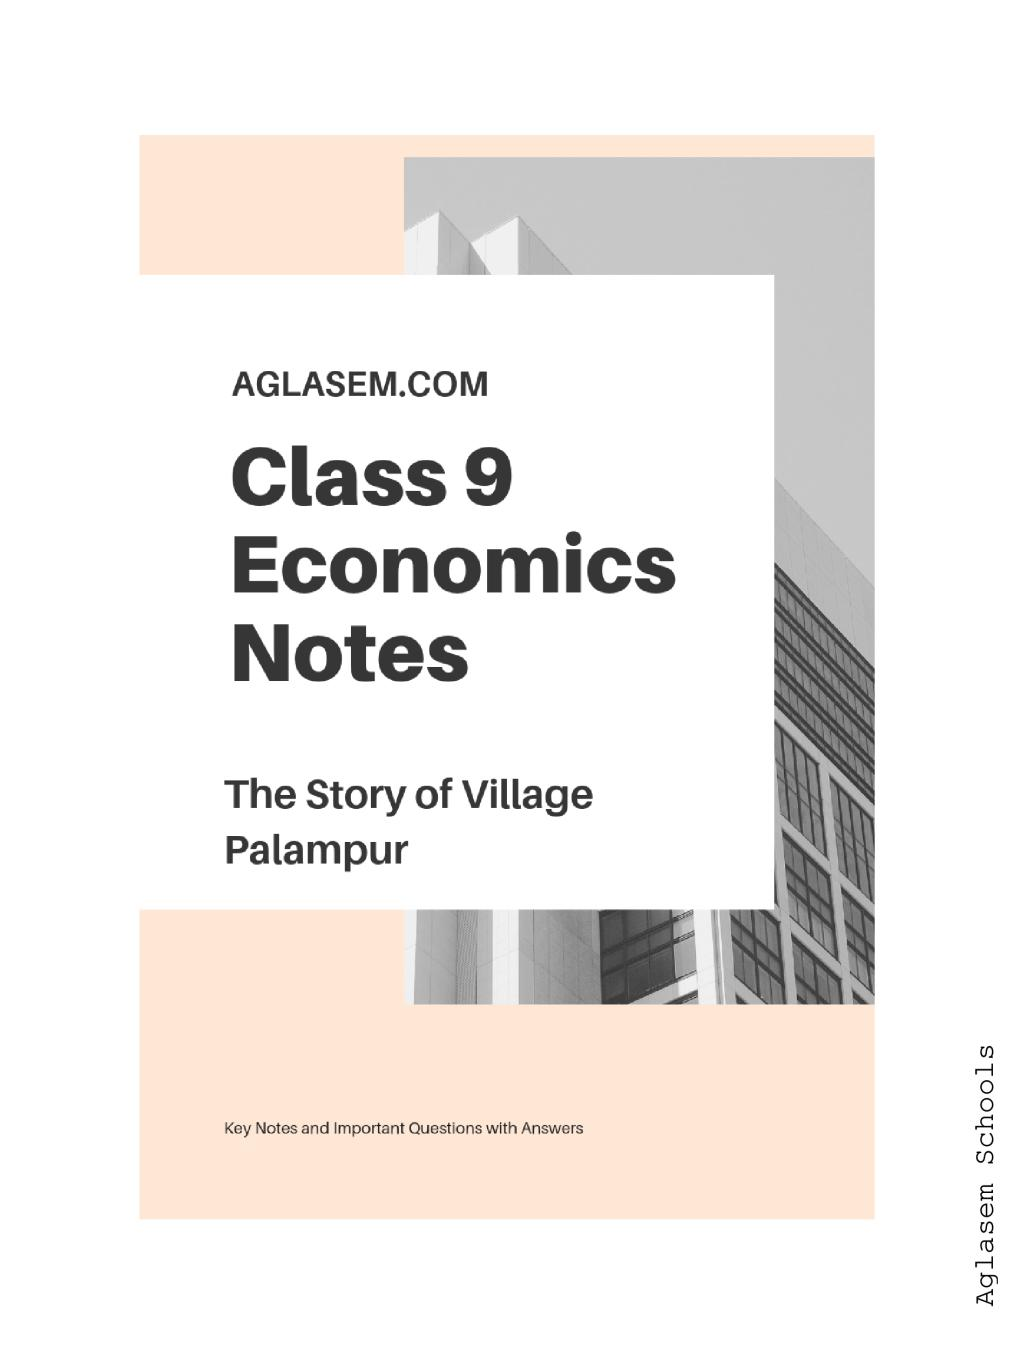 Class 9 Social Science (Economics) The Story of Village Palampur Notes, Important Questions & Practice Paper